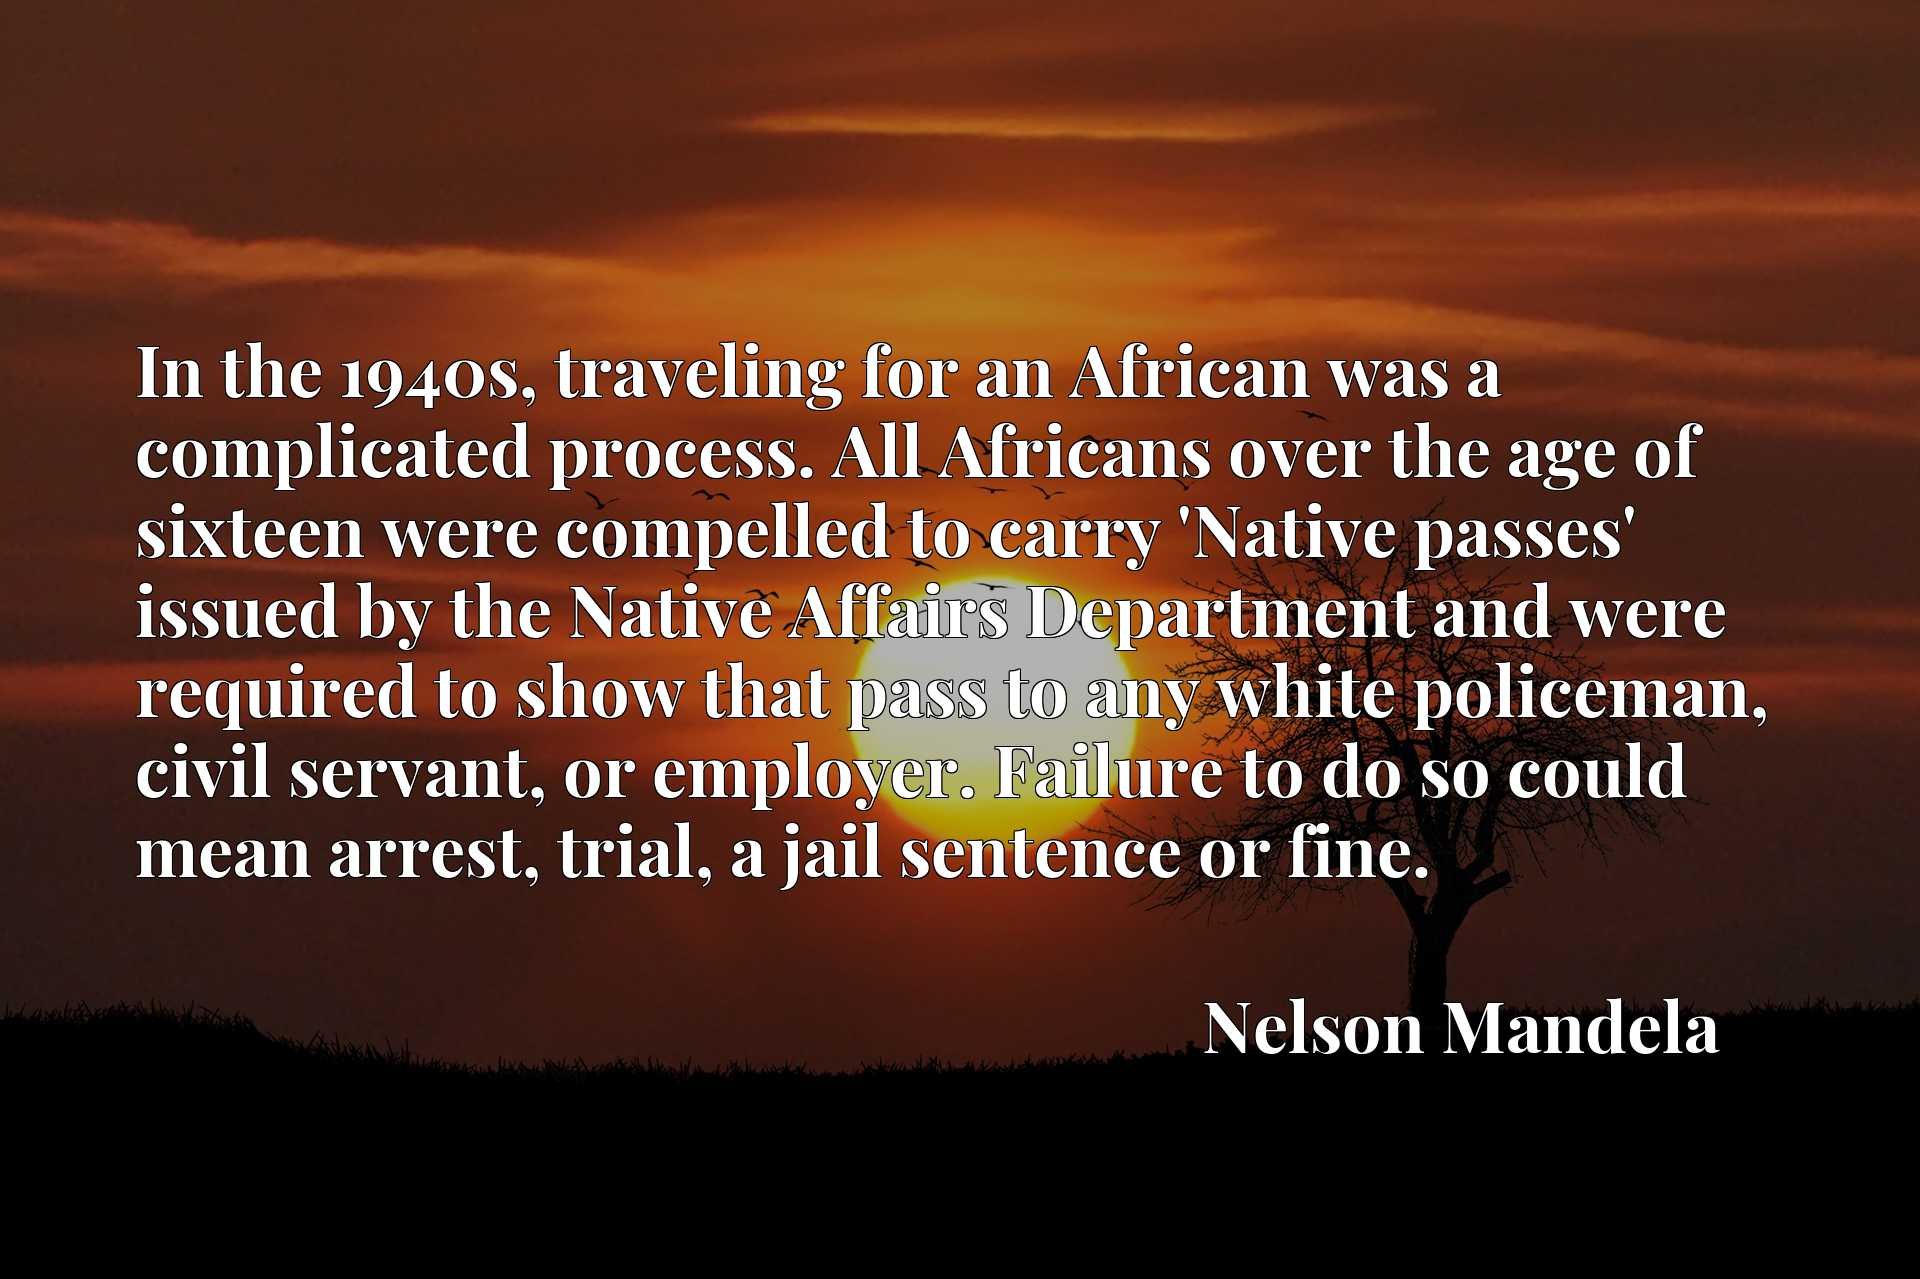 In the 1940s, traveling for an African was a complicated process. All Africans over the age of sixteen were compelled to carry 'Native passes' issued by the Native Affairs Department and were required to show that pass to any white policeman, civil servant, or employer. Failure to do so could mean arrest, trial, a jail sentence or fine.